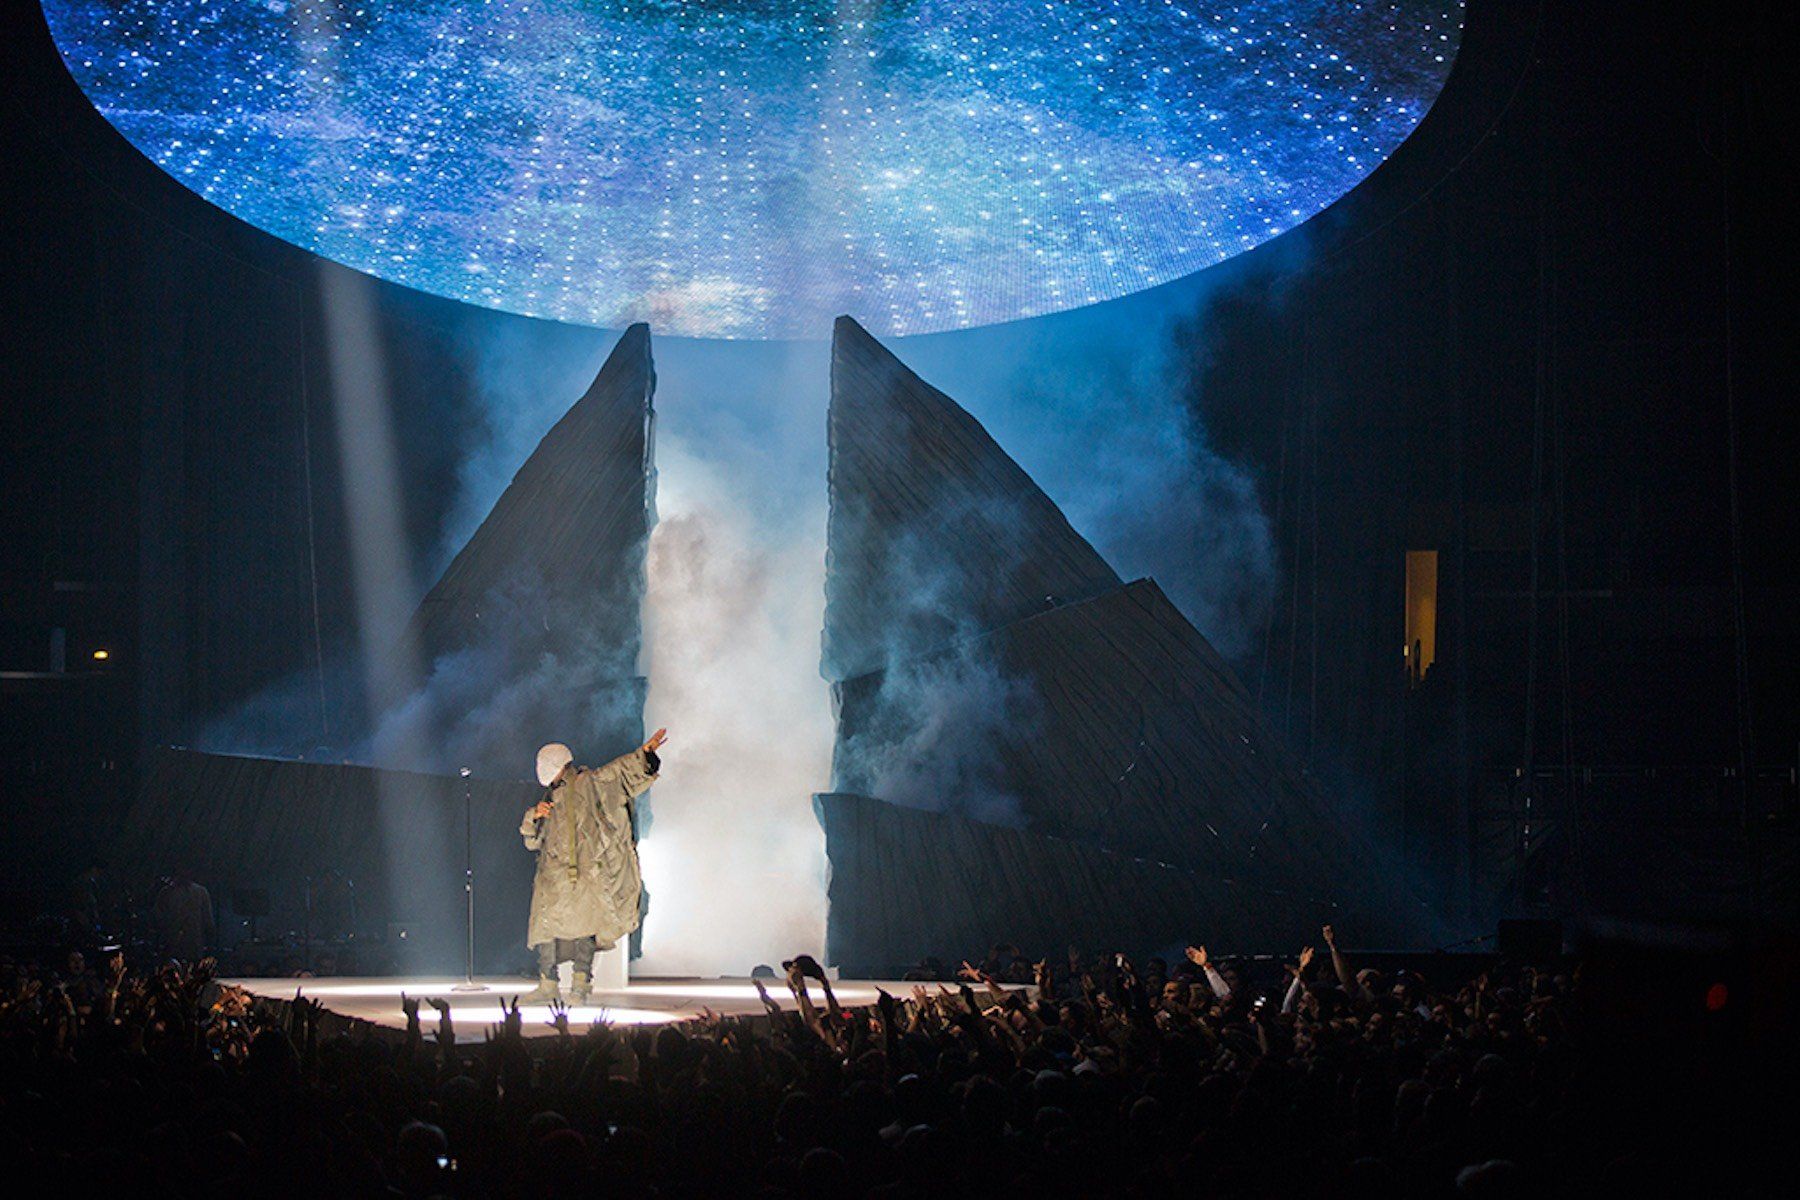 3d Animation Wallpaper Hd Kanye West Yeezus Tour Lightborne Communications